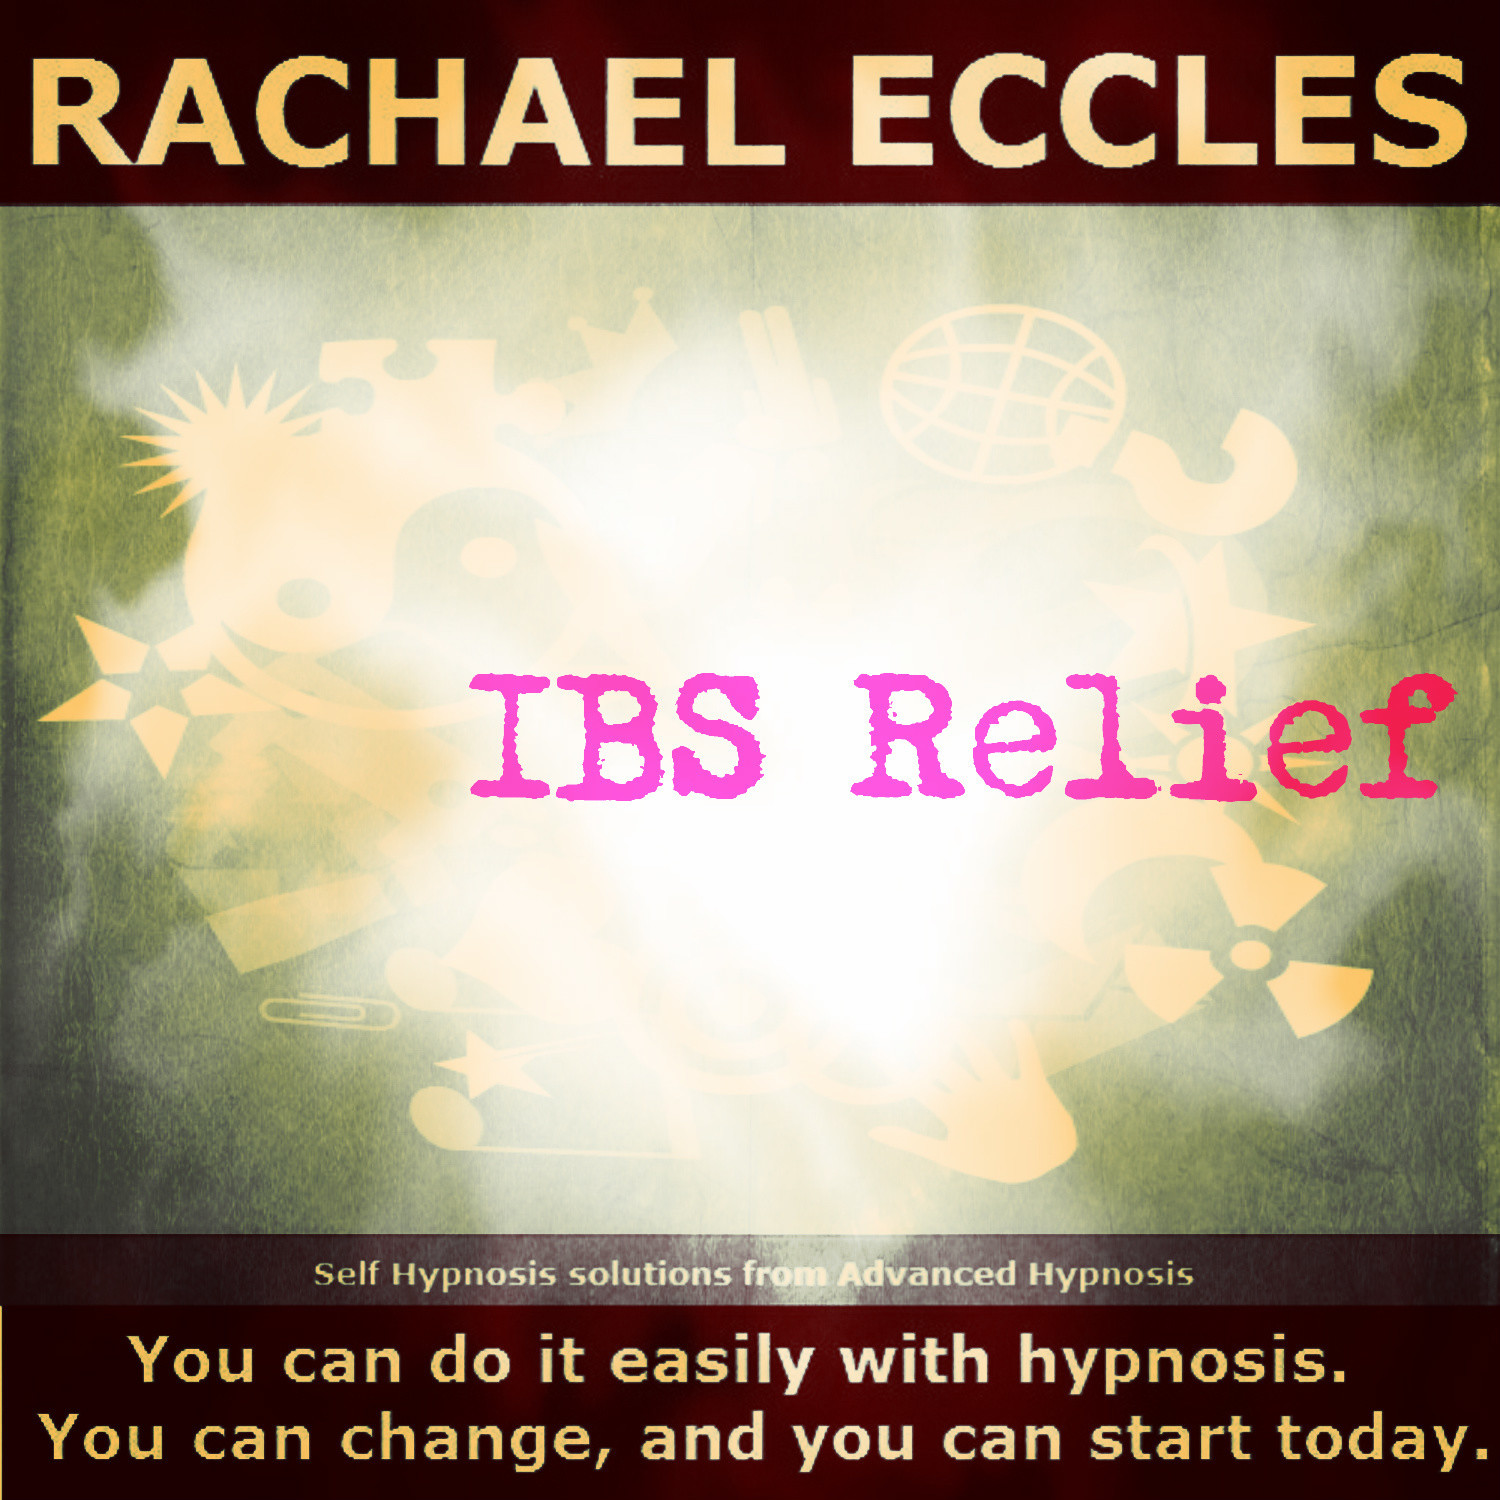 IBS Hypnosis (Relieve Irritable Bowel Syndrome) IBS Relief hypnotherapy 3 track self hypnosis CD